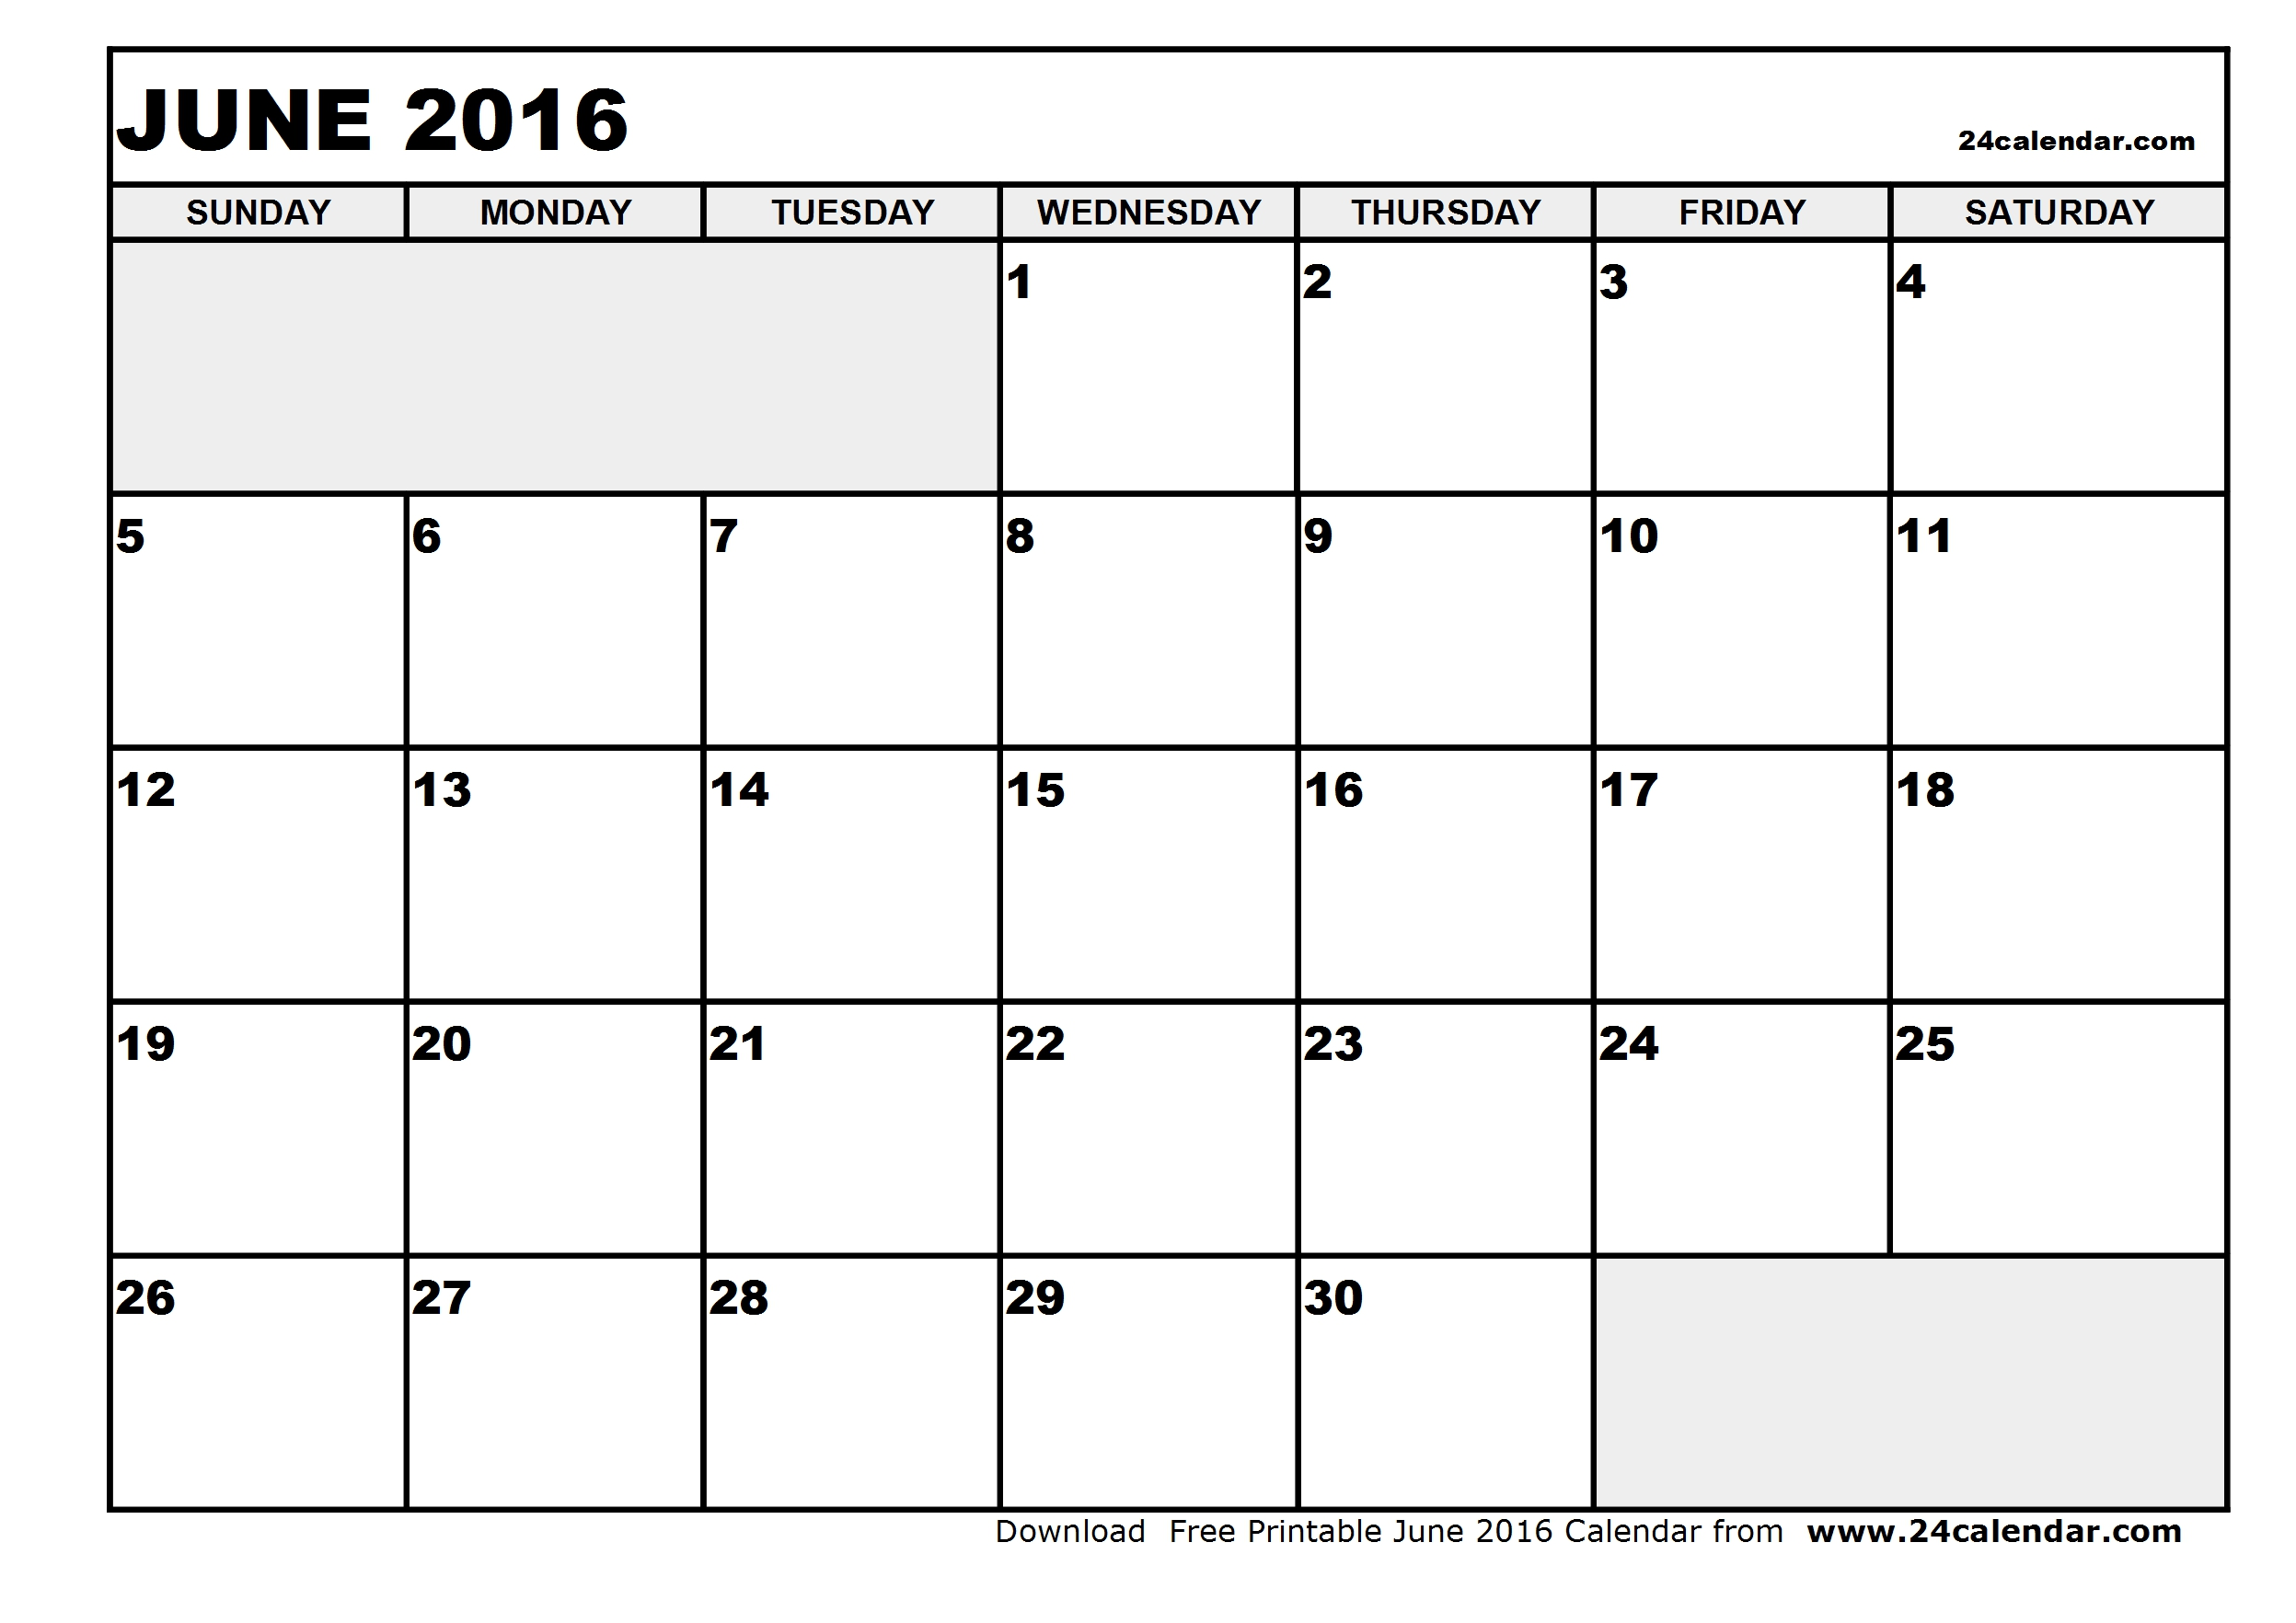 April 2016 calendar clipart.  june